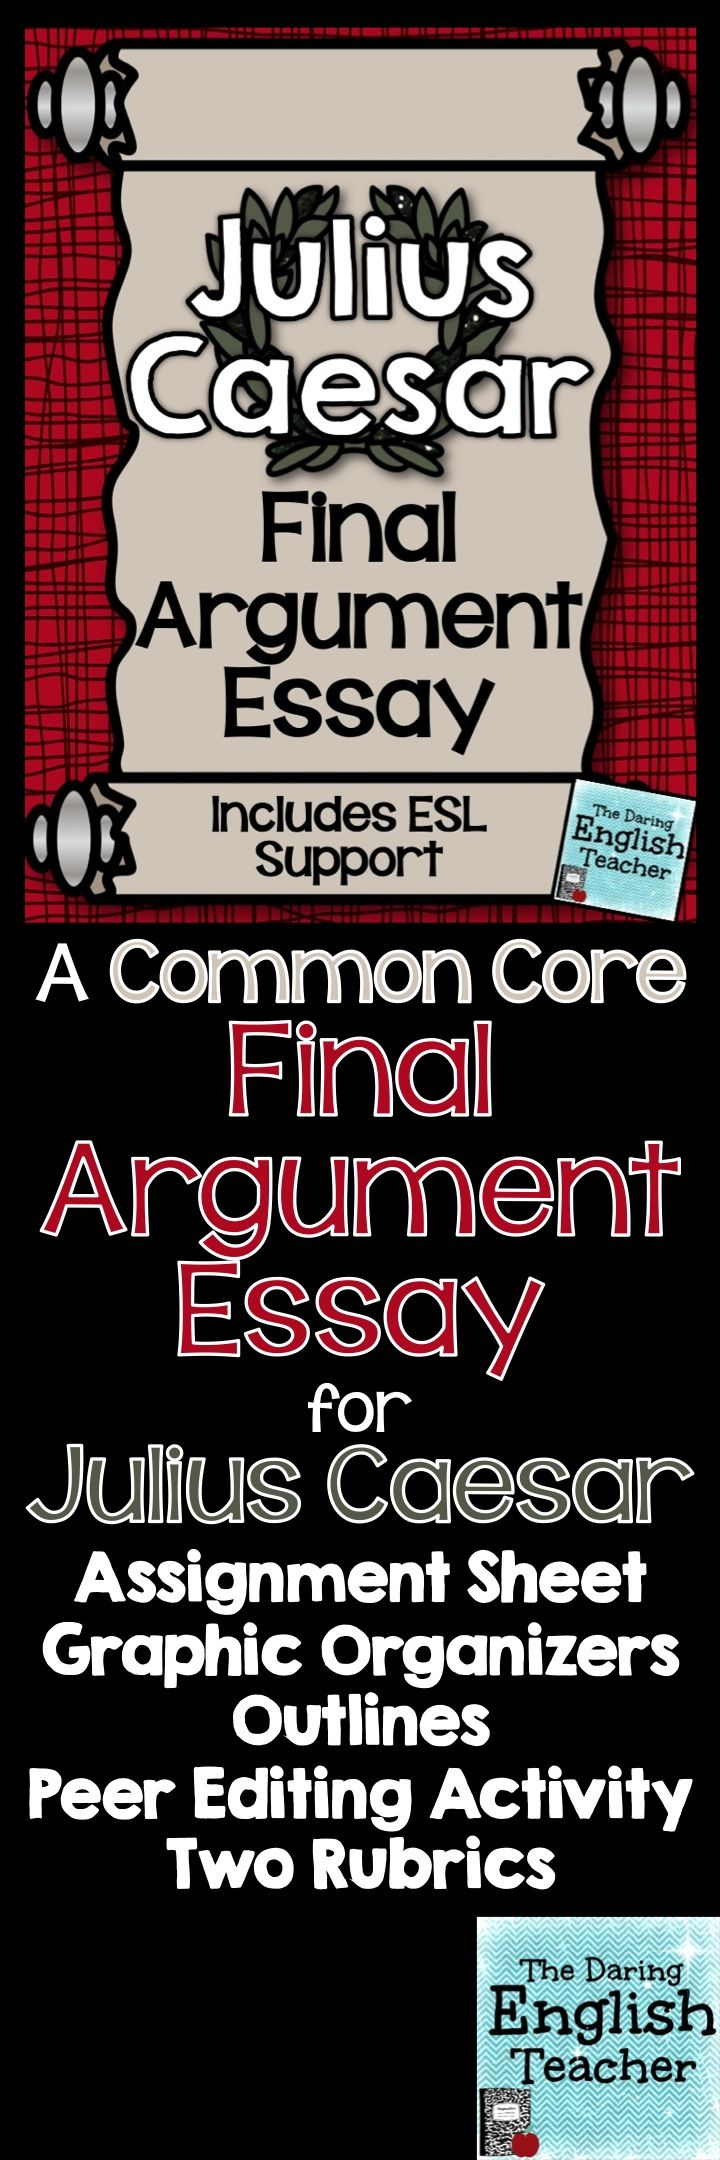 pay for my best argumentative essay on shakespeare should students be paid for good grades persuasive essay should students get paid for good grades